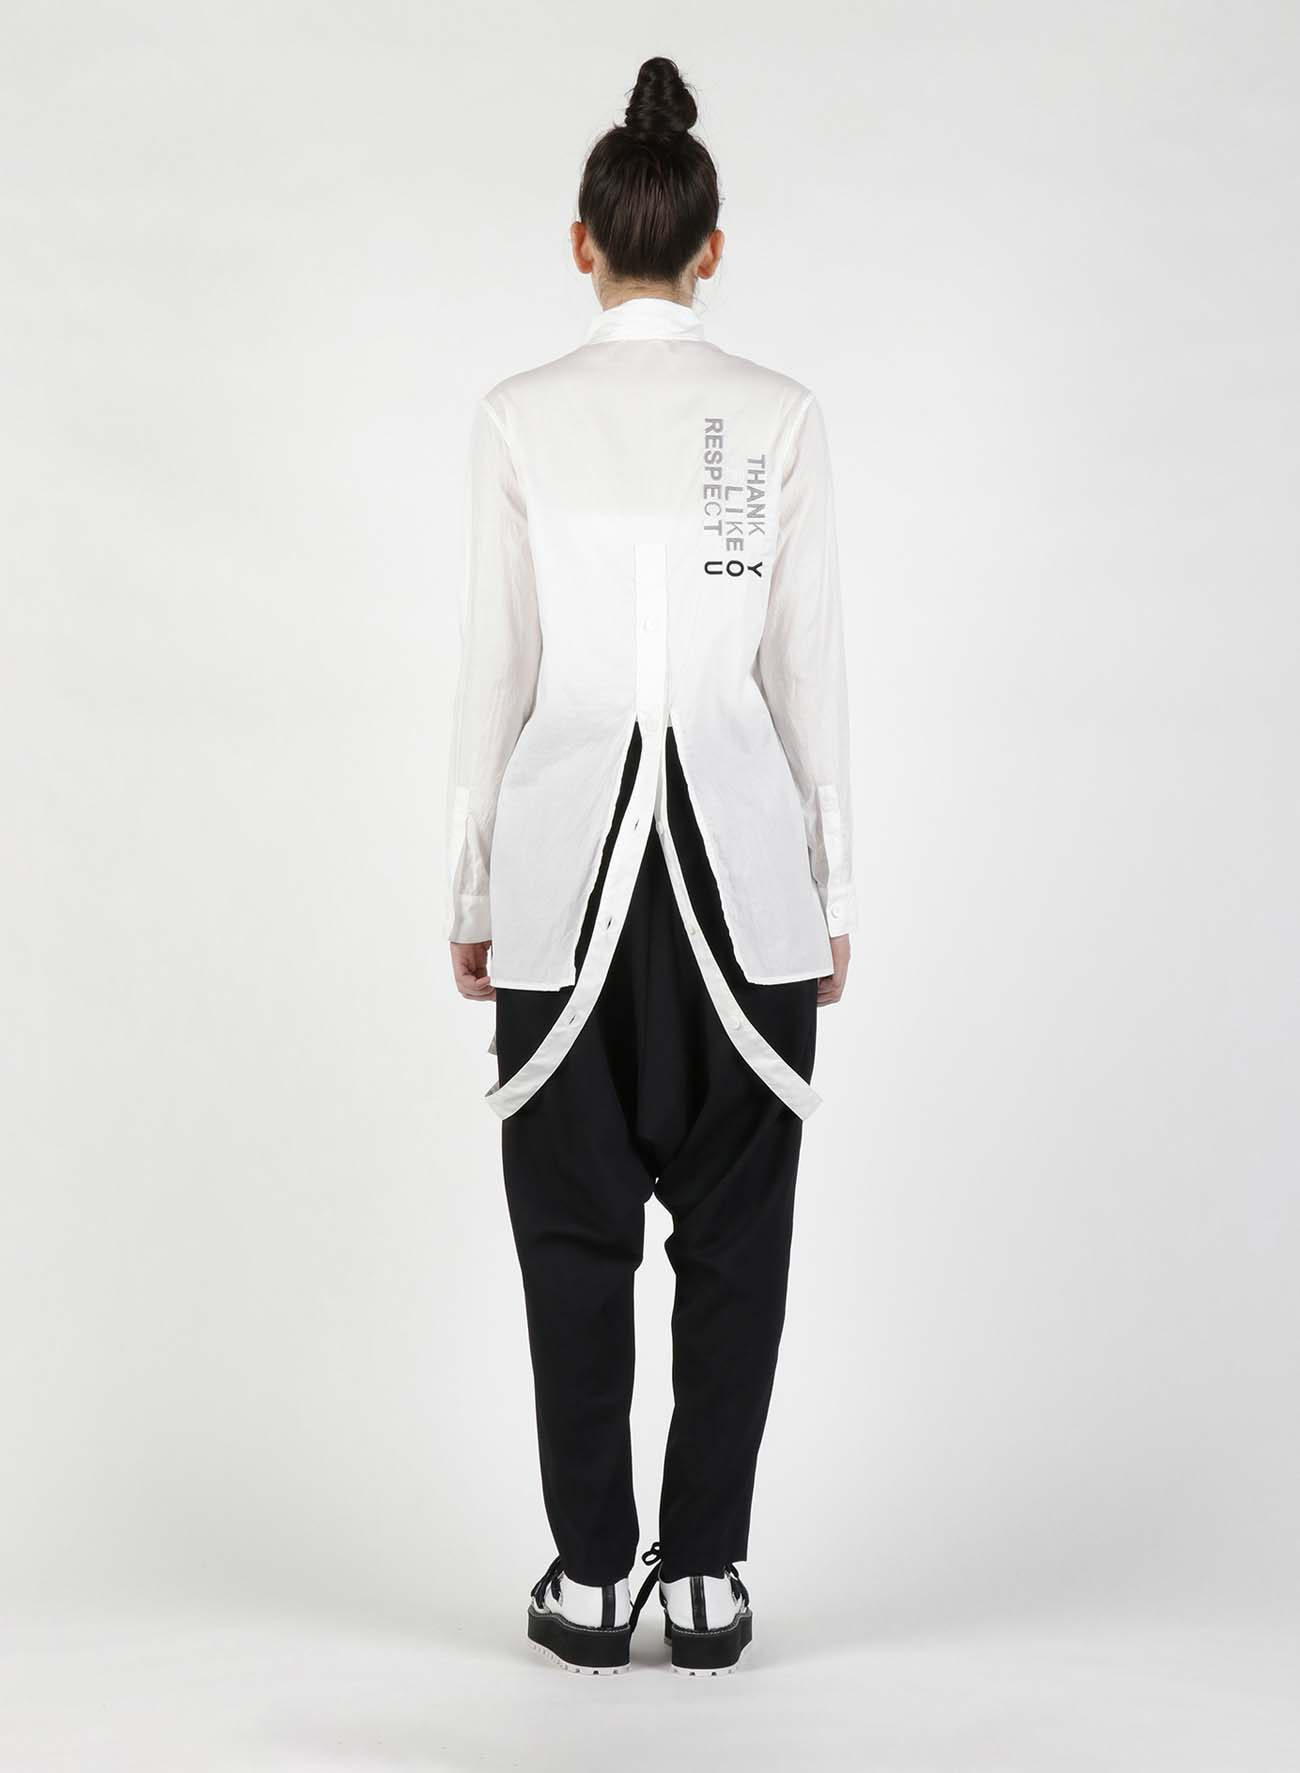 Cotton Fuxk You Embroidery Long Tape Shirt